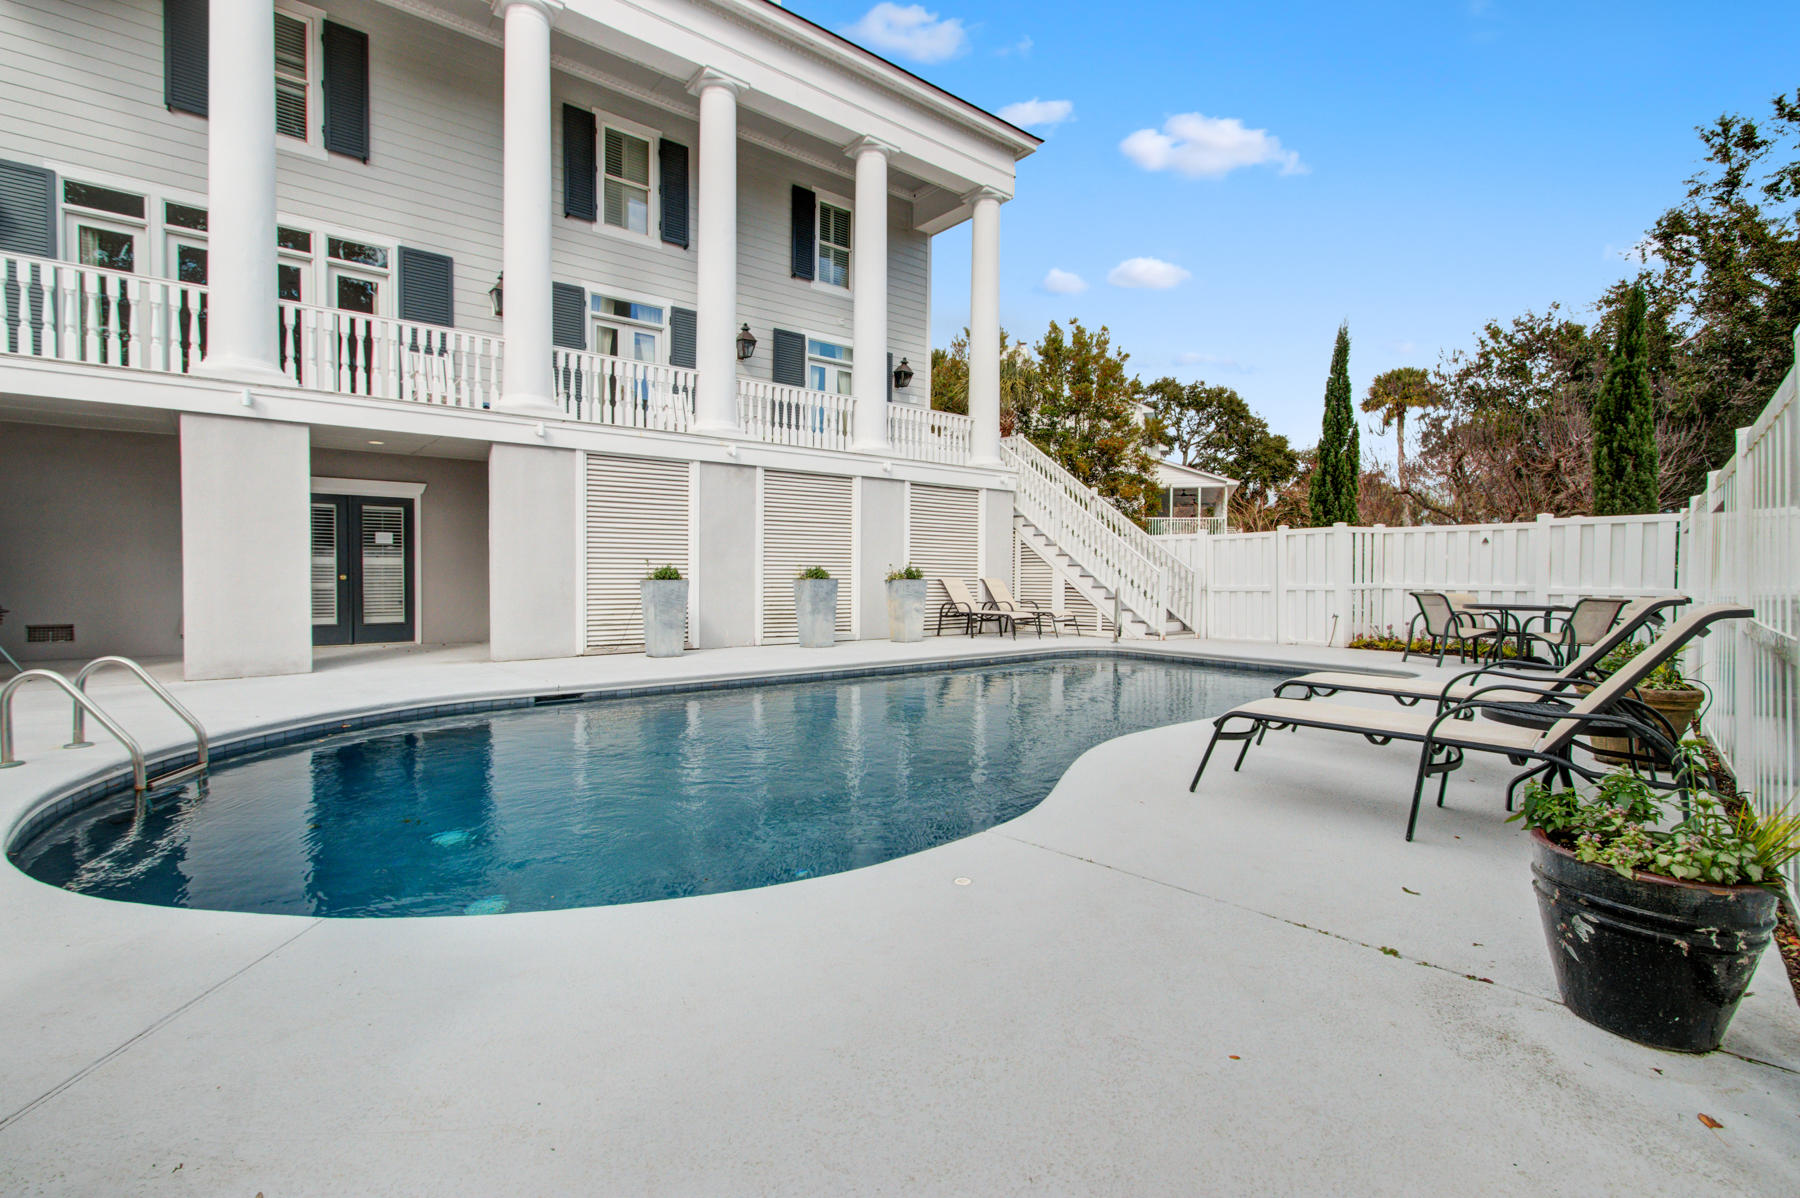 Wild Dunes Homes For Sale - 1 Ocean Point, Isle of Palms, SC - 15